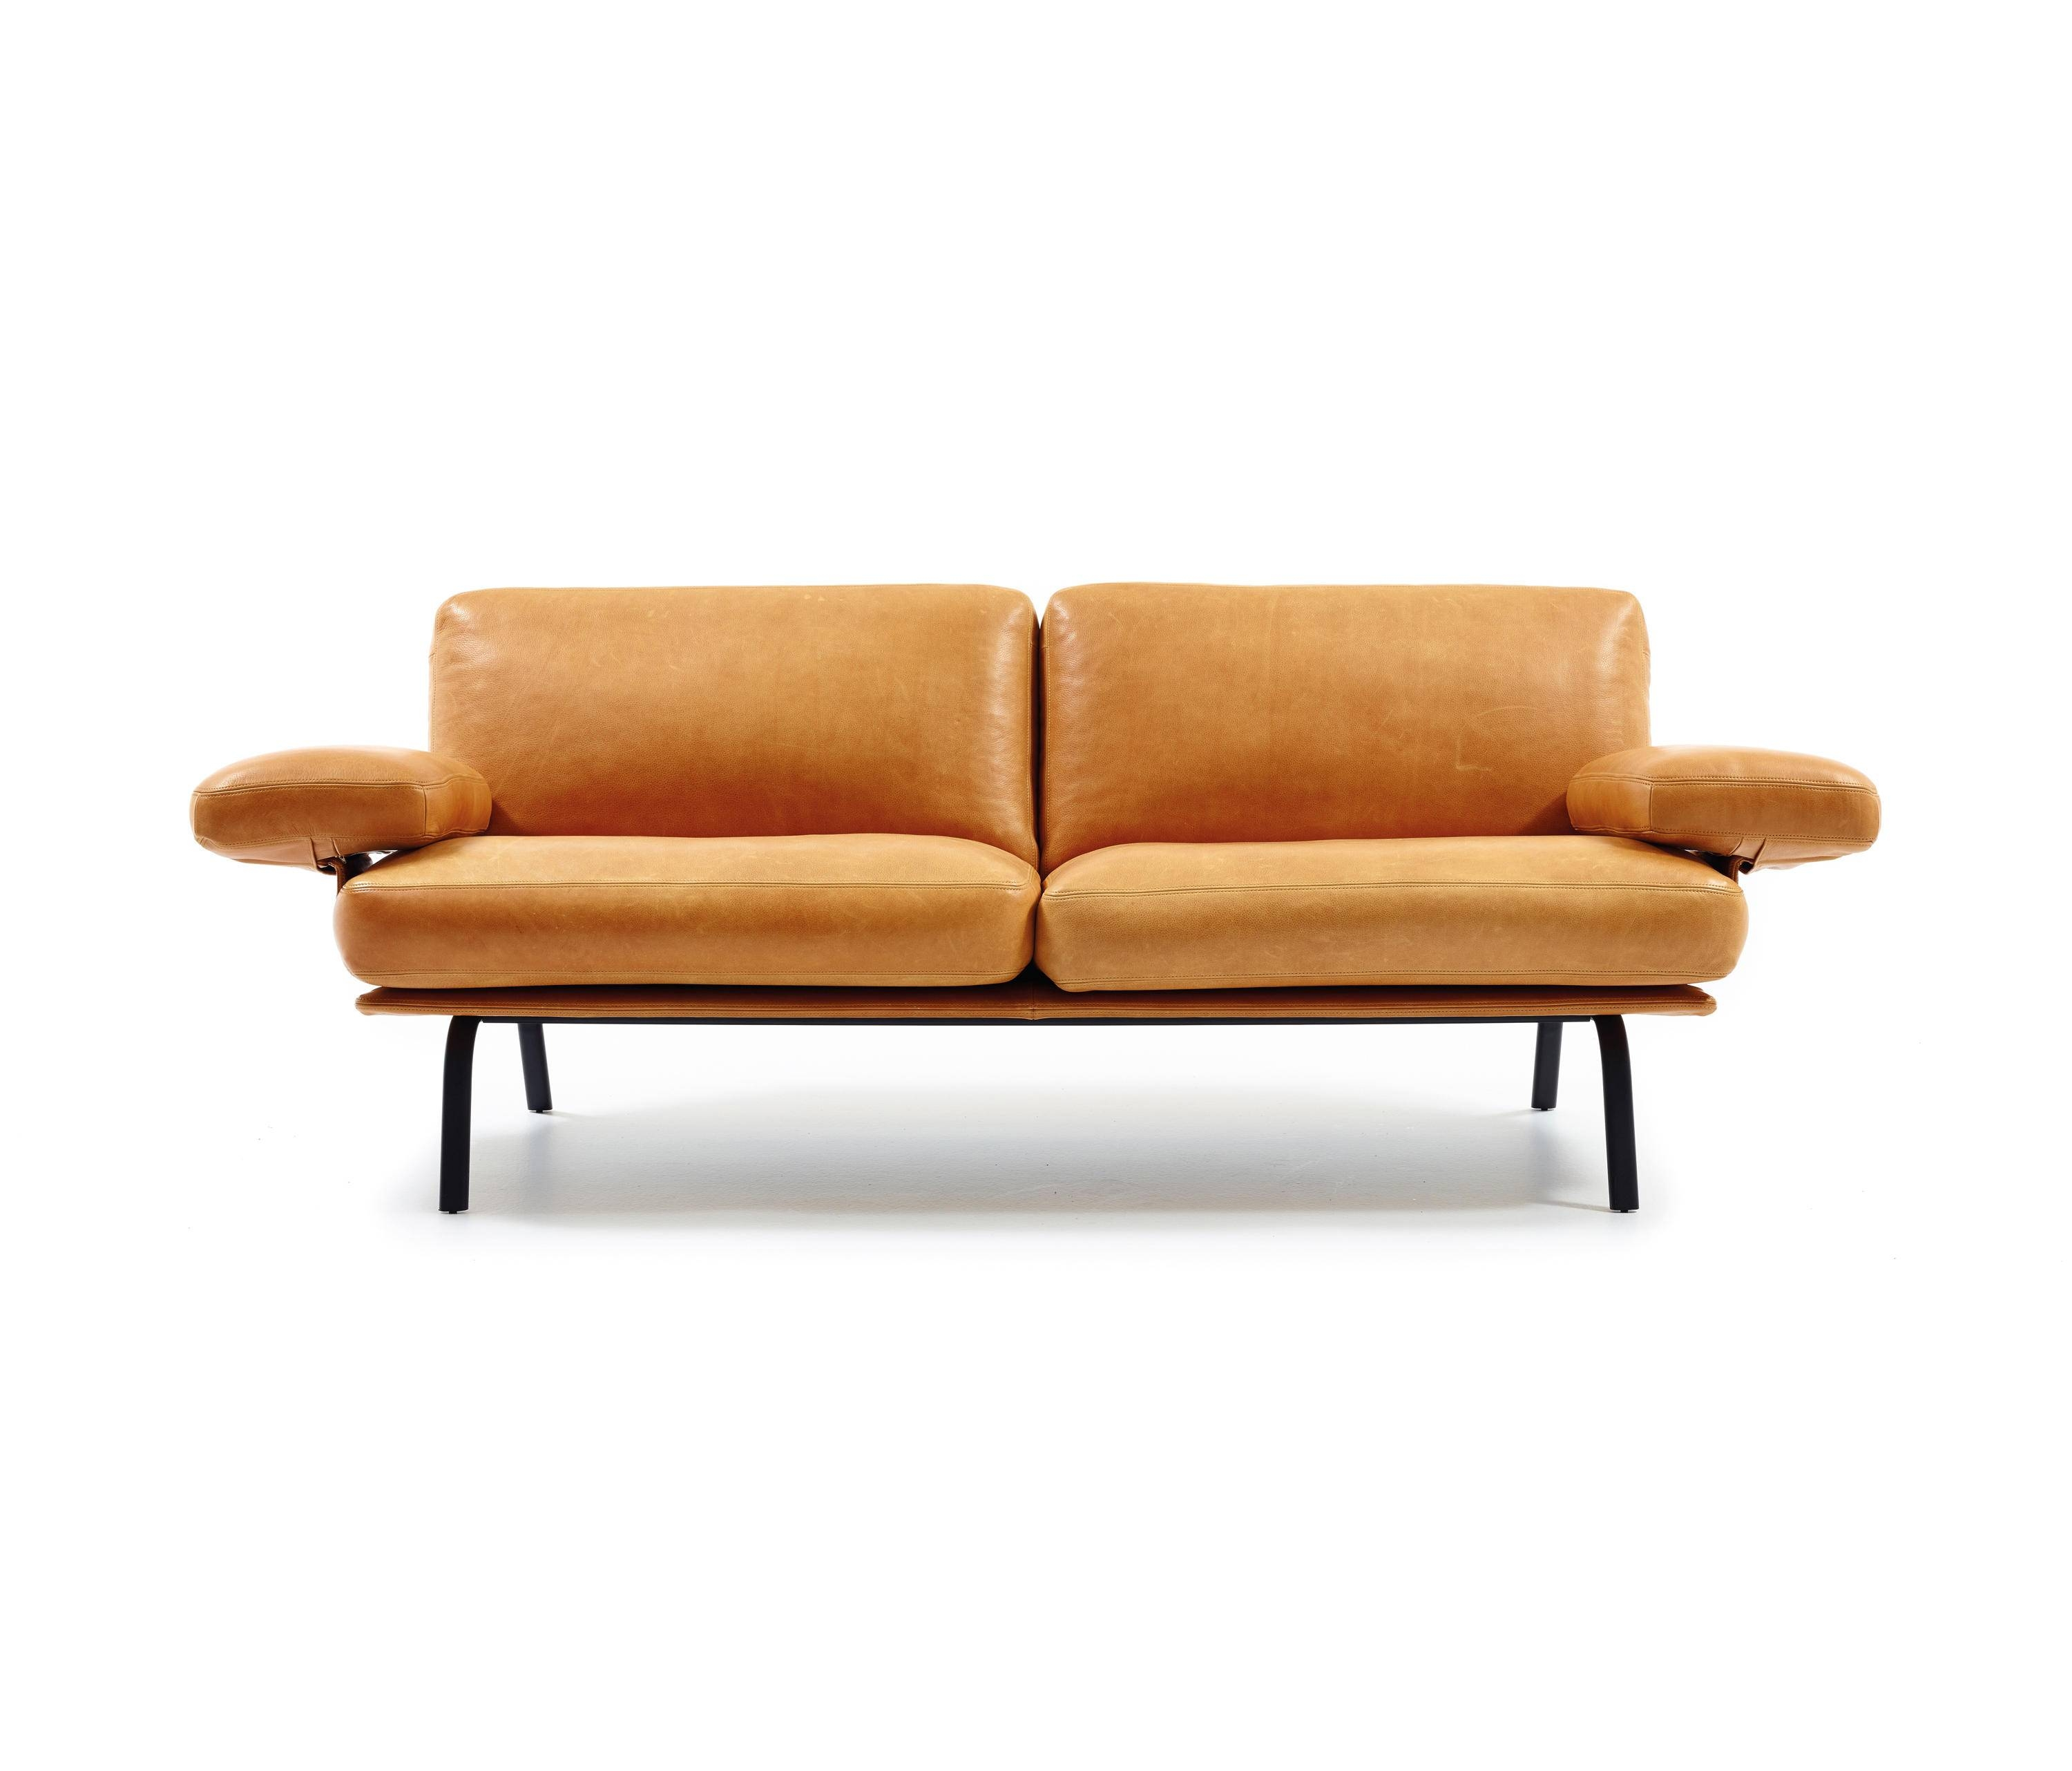 New Port - Lounge Sofas From Durlet | Architonic regarding Newport Sofas (Image 11 of 30)